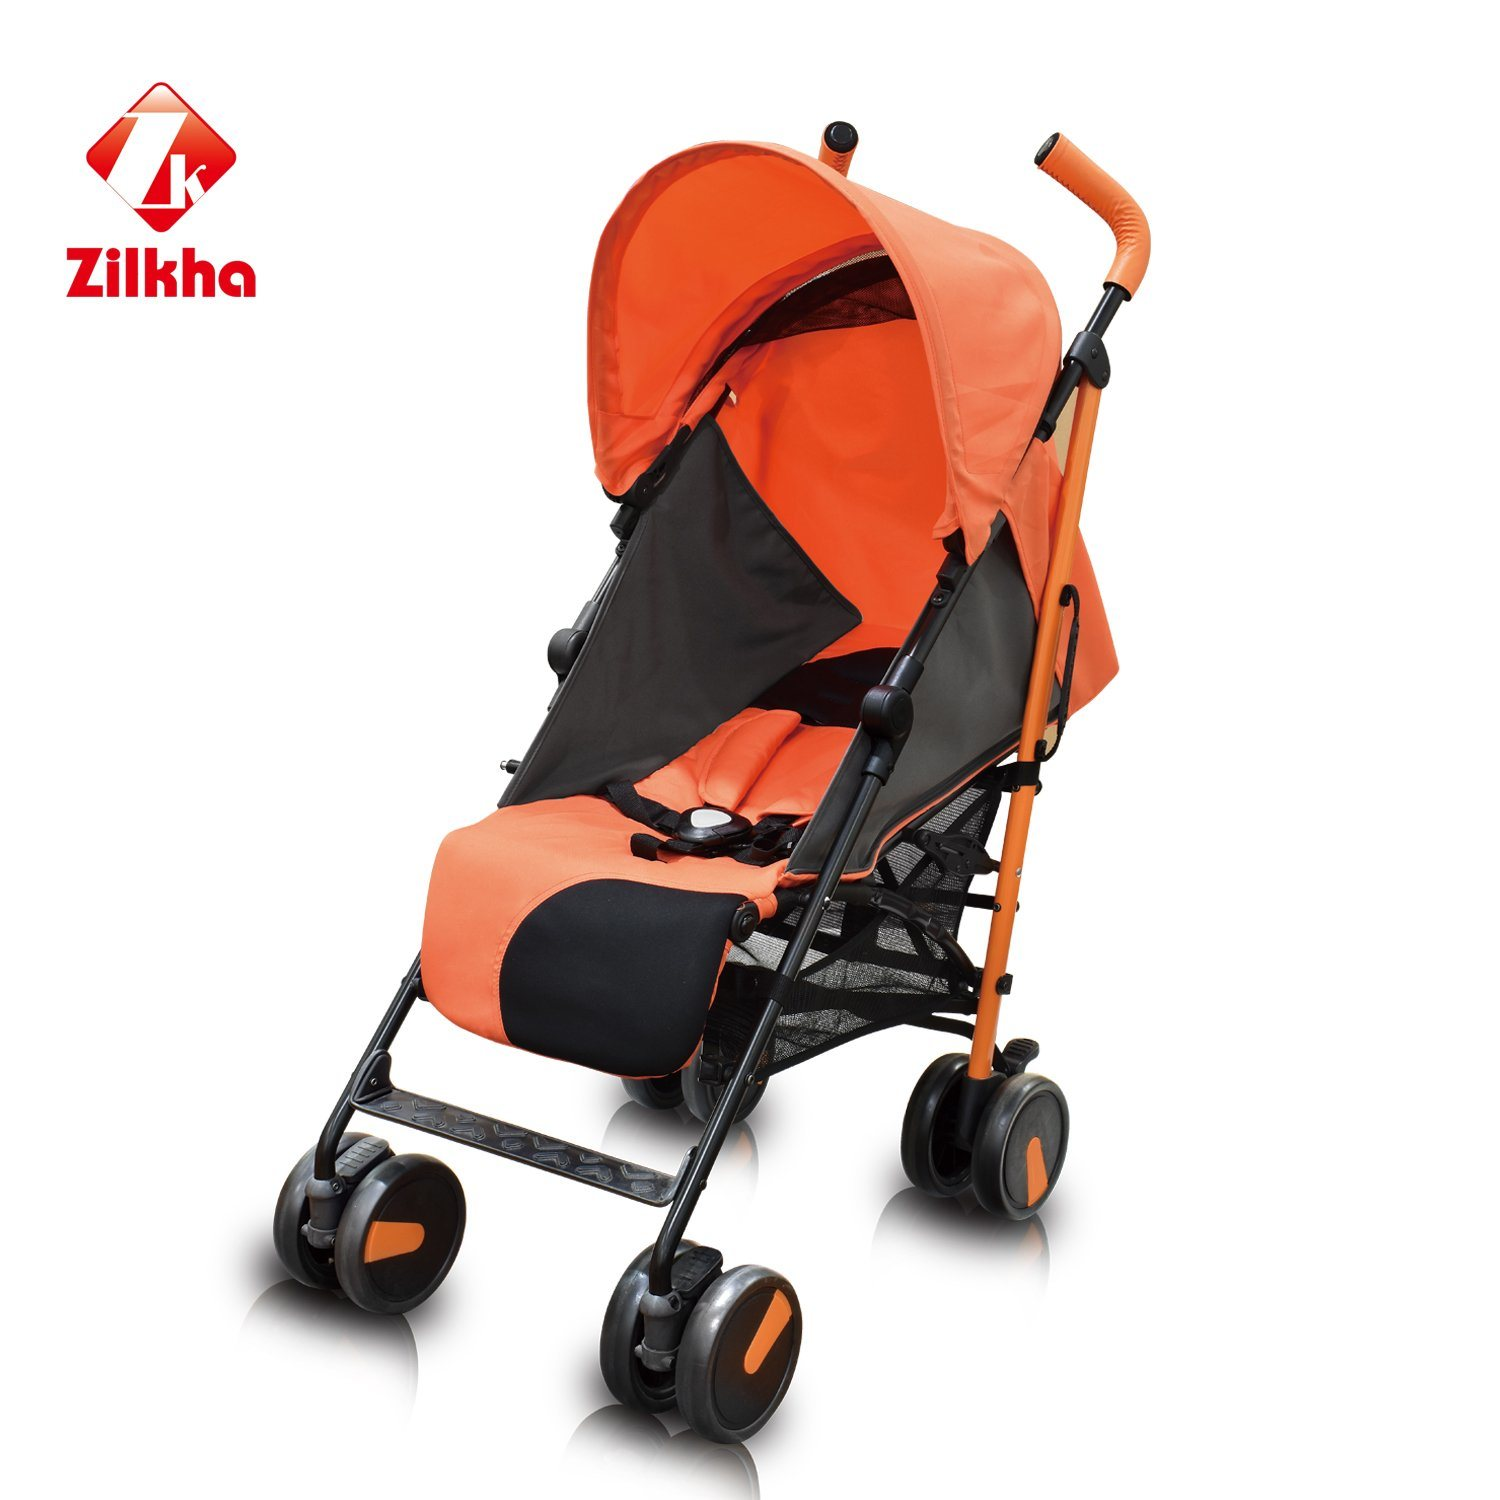 Orange Convertible Baby Carriage - Comfortable and Breathable Cover The Sun